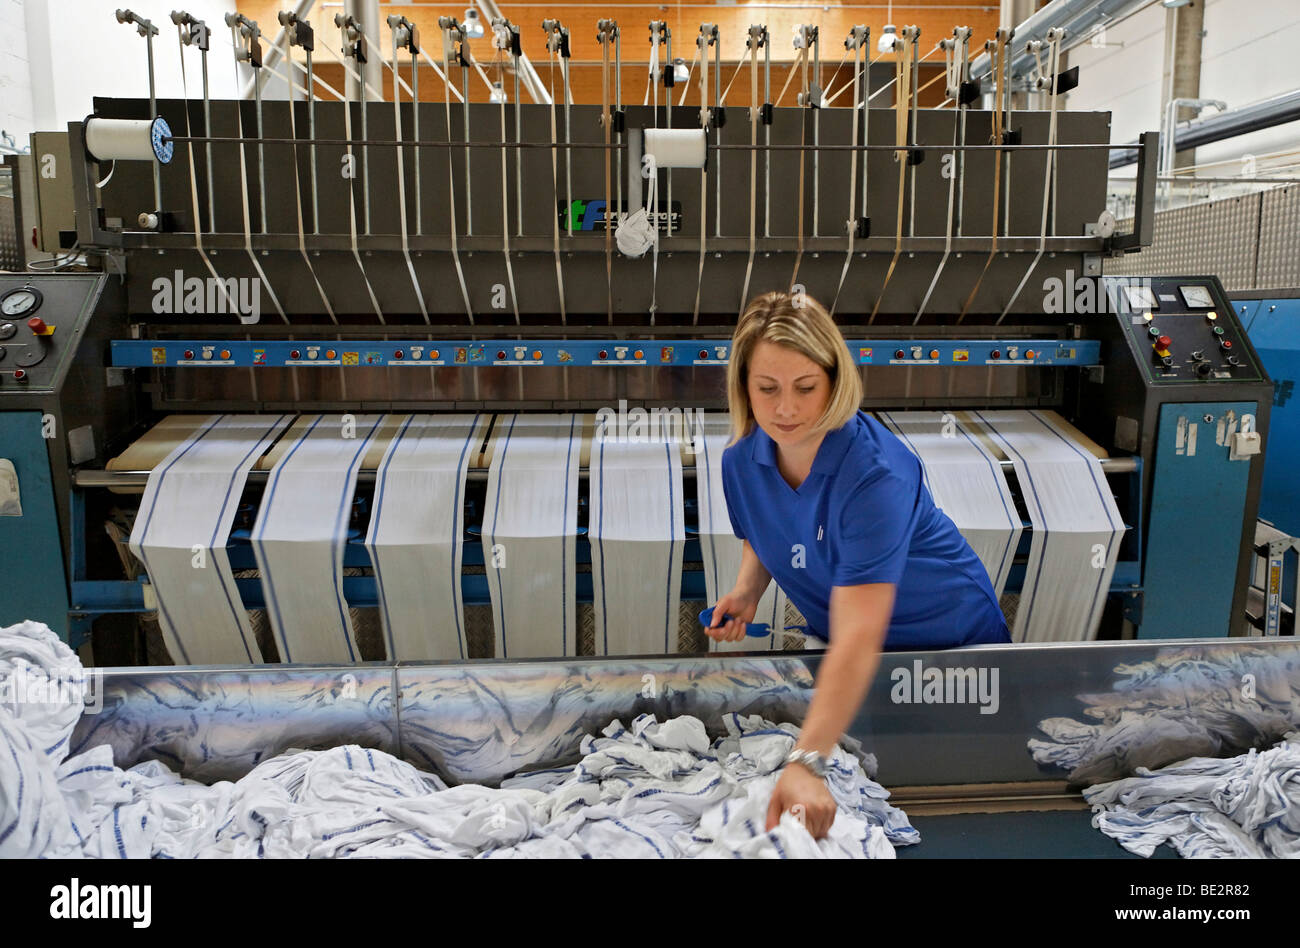 Janet Akgus working in the mangle hall at the handtowel rolls mangle machinery, Bardusch Uniform Rental & Laundry Stock Photo